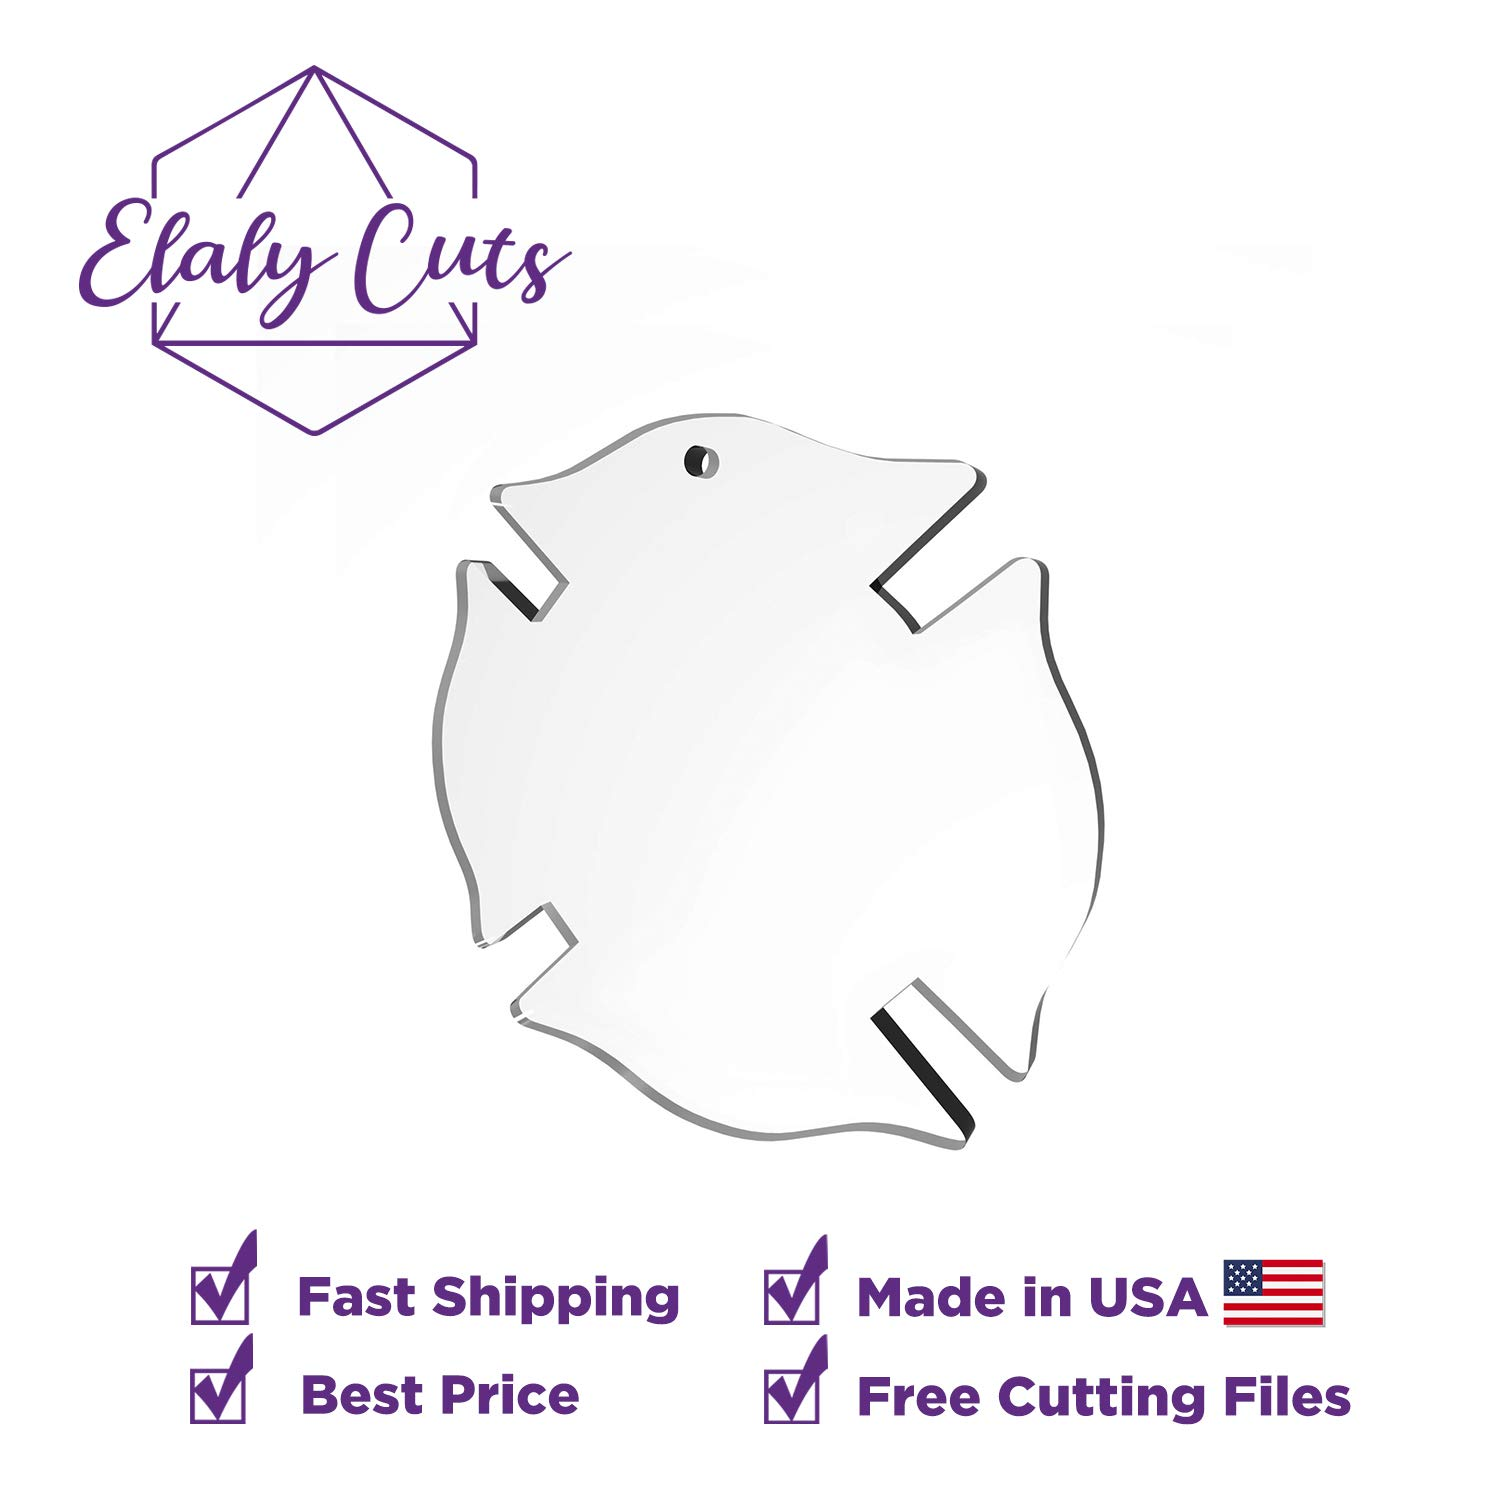 and DIY Crafts Laser Cut Clear Blanks for Vinyl Projects Includes Free SVG Files Blank Keychains Firefighter Symbol Blanks Acrylic Ornaments